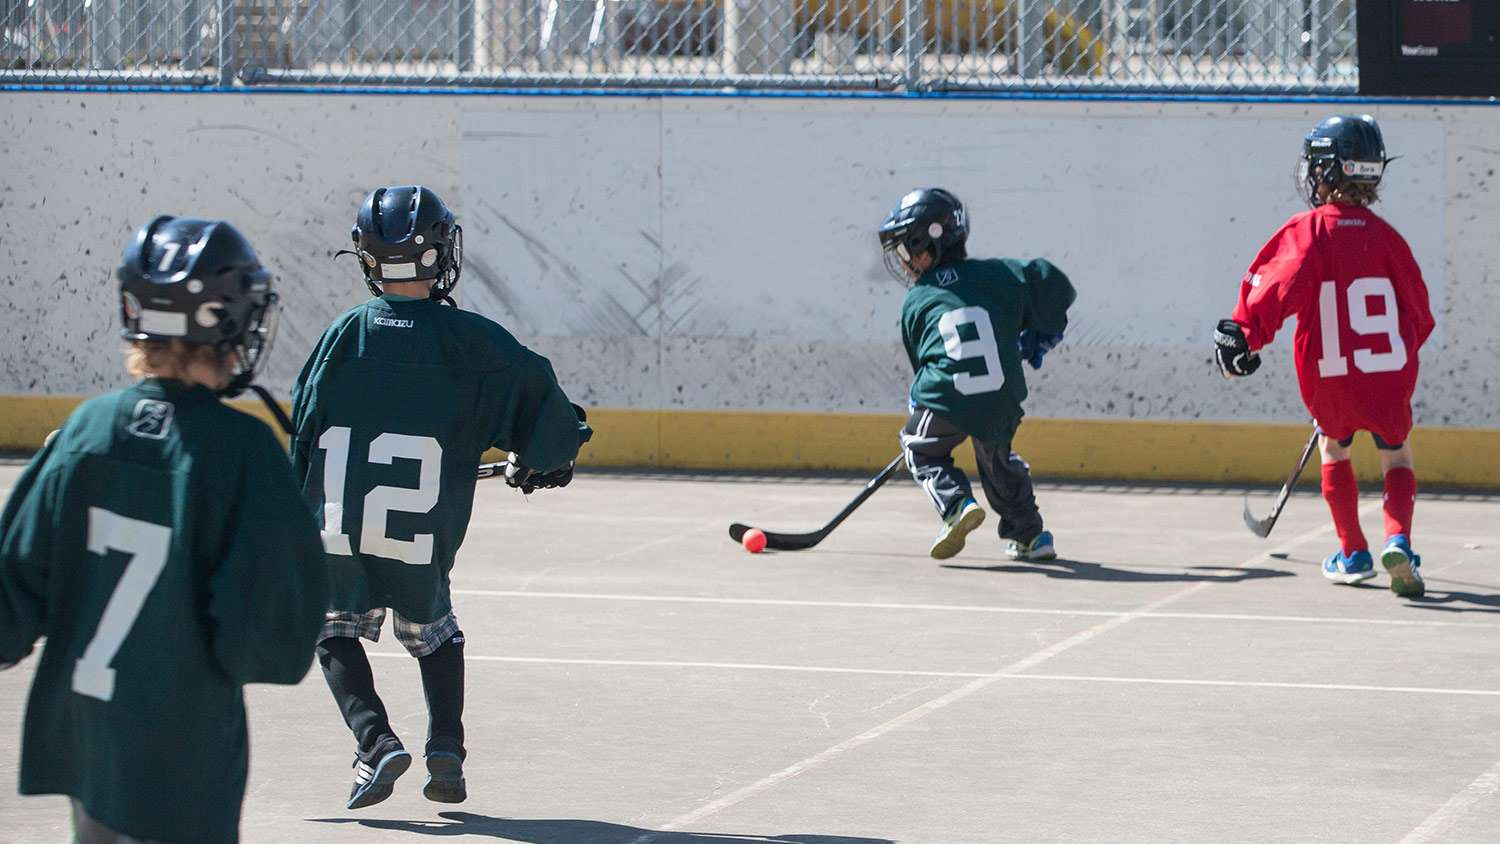 2014 tor ball hockey 1500